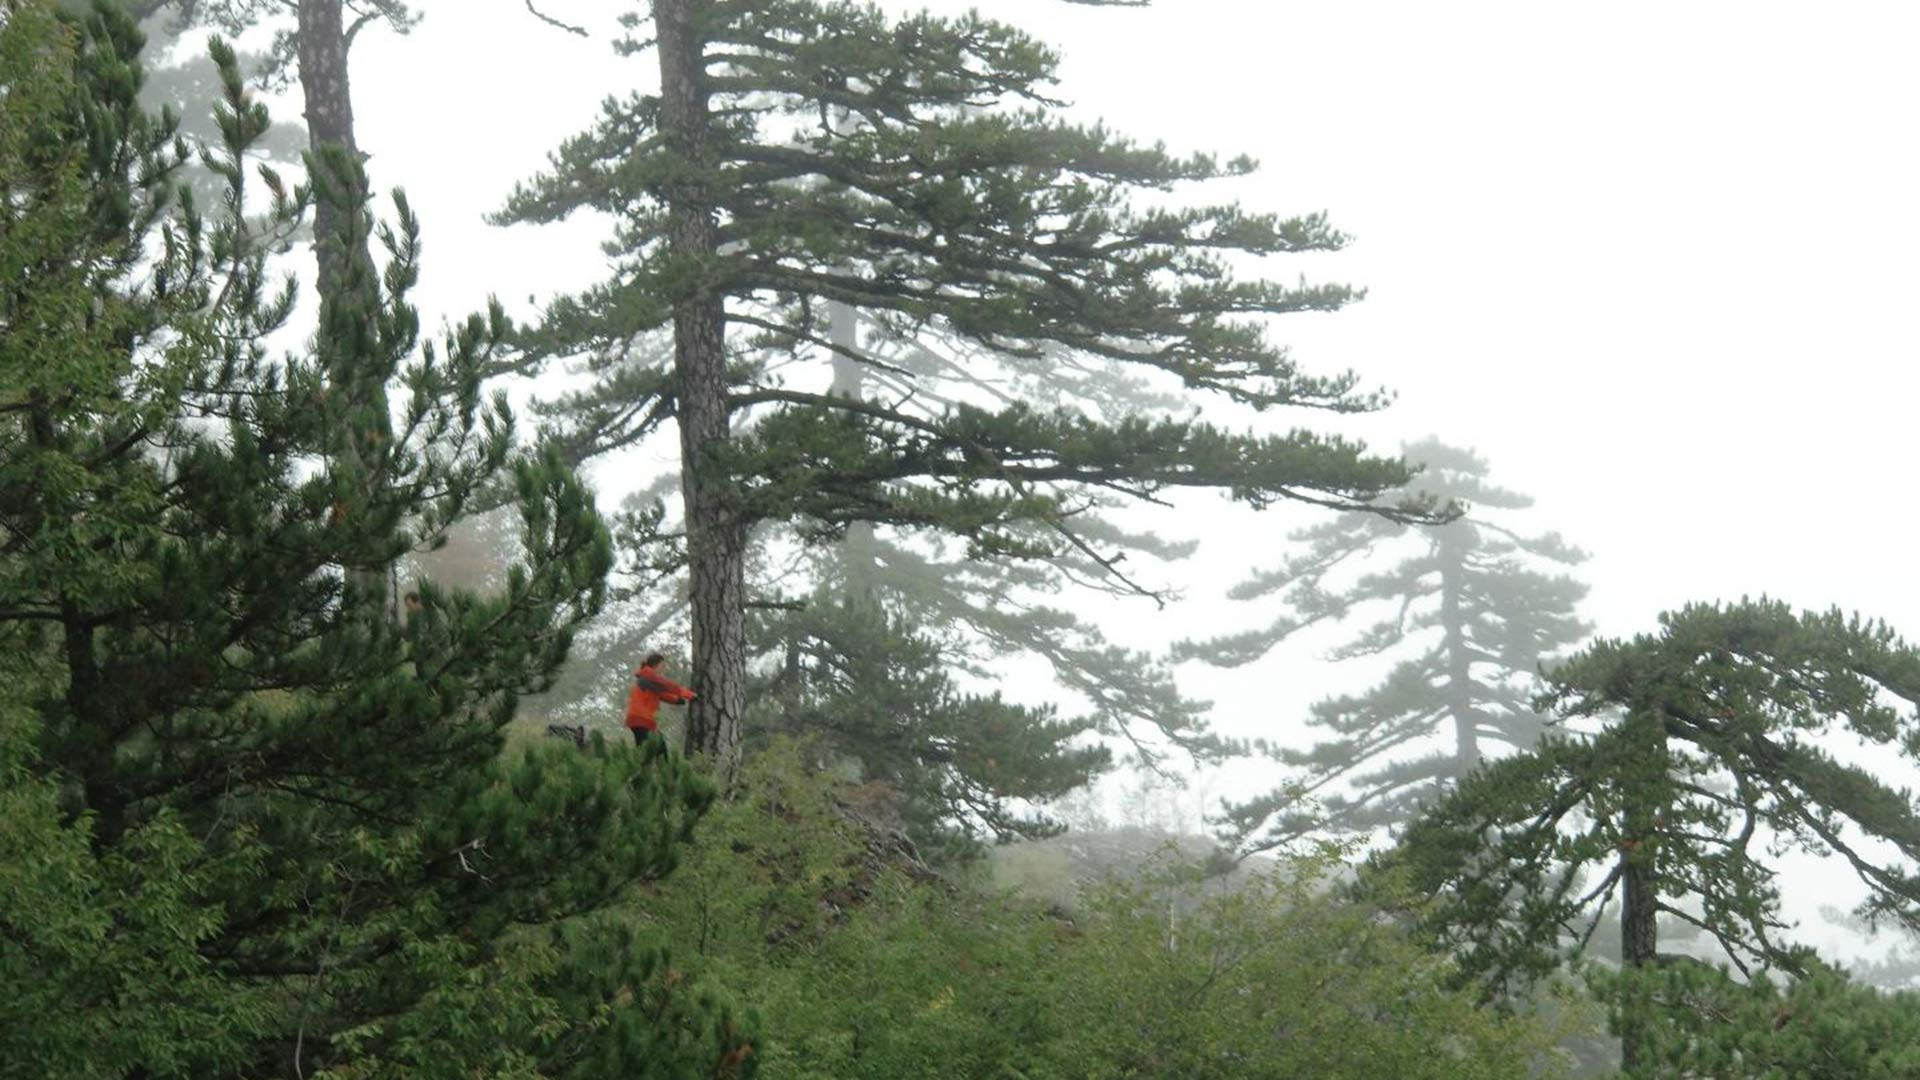 University of Arizona tree-ring scientist Valerie Trouet taking a pencil-thin core from an old Bosnian pine  growing on Mount Olympus in Greece.